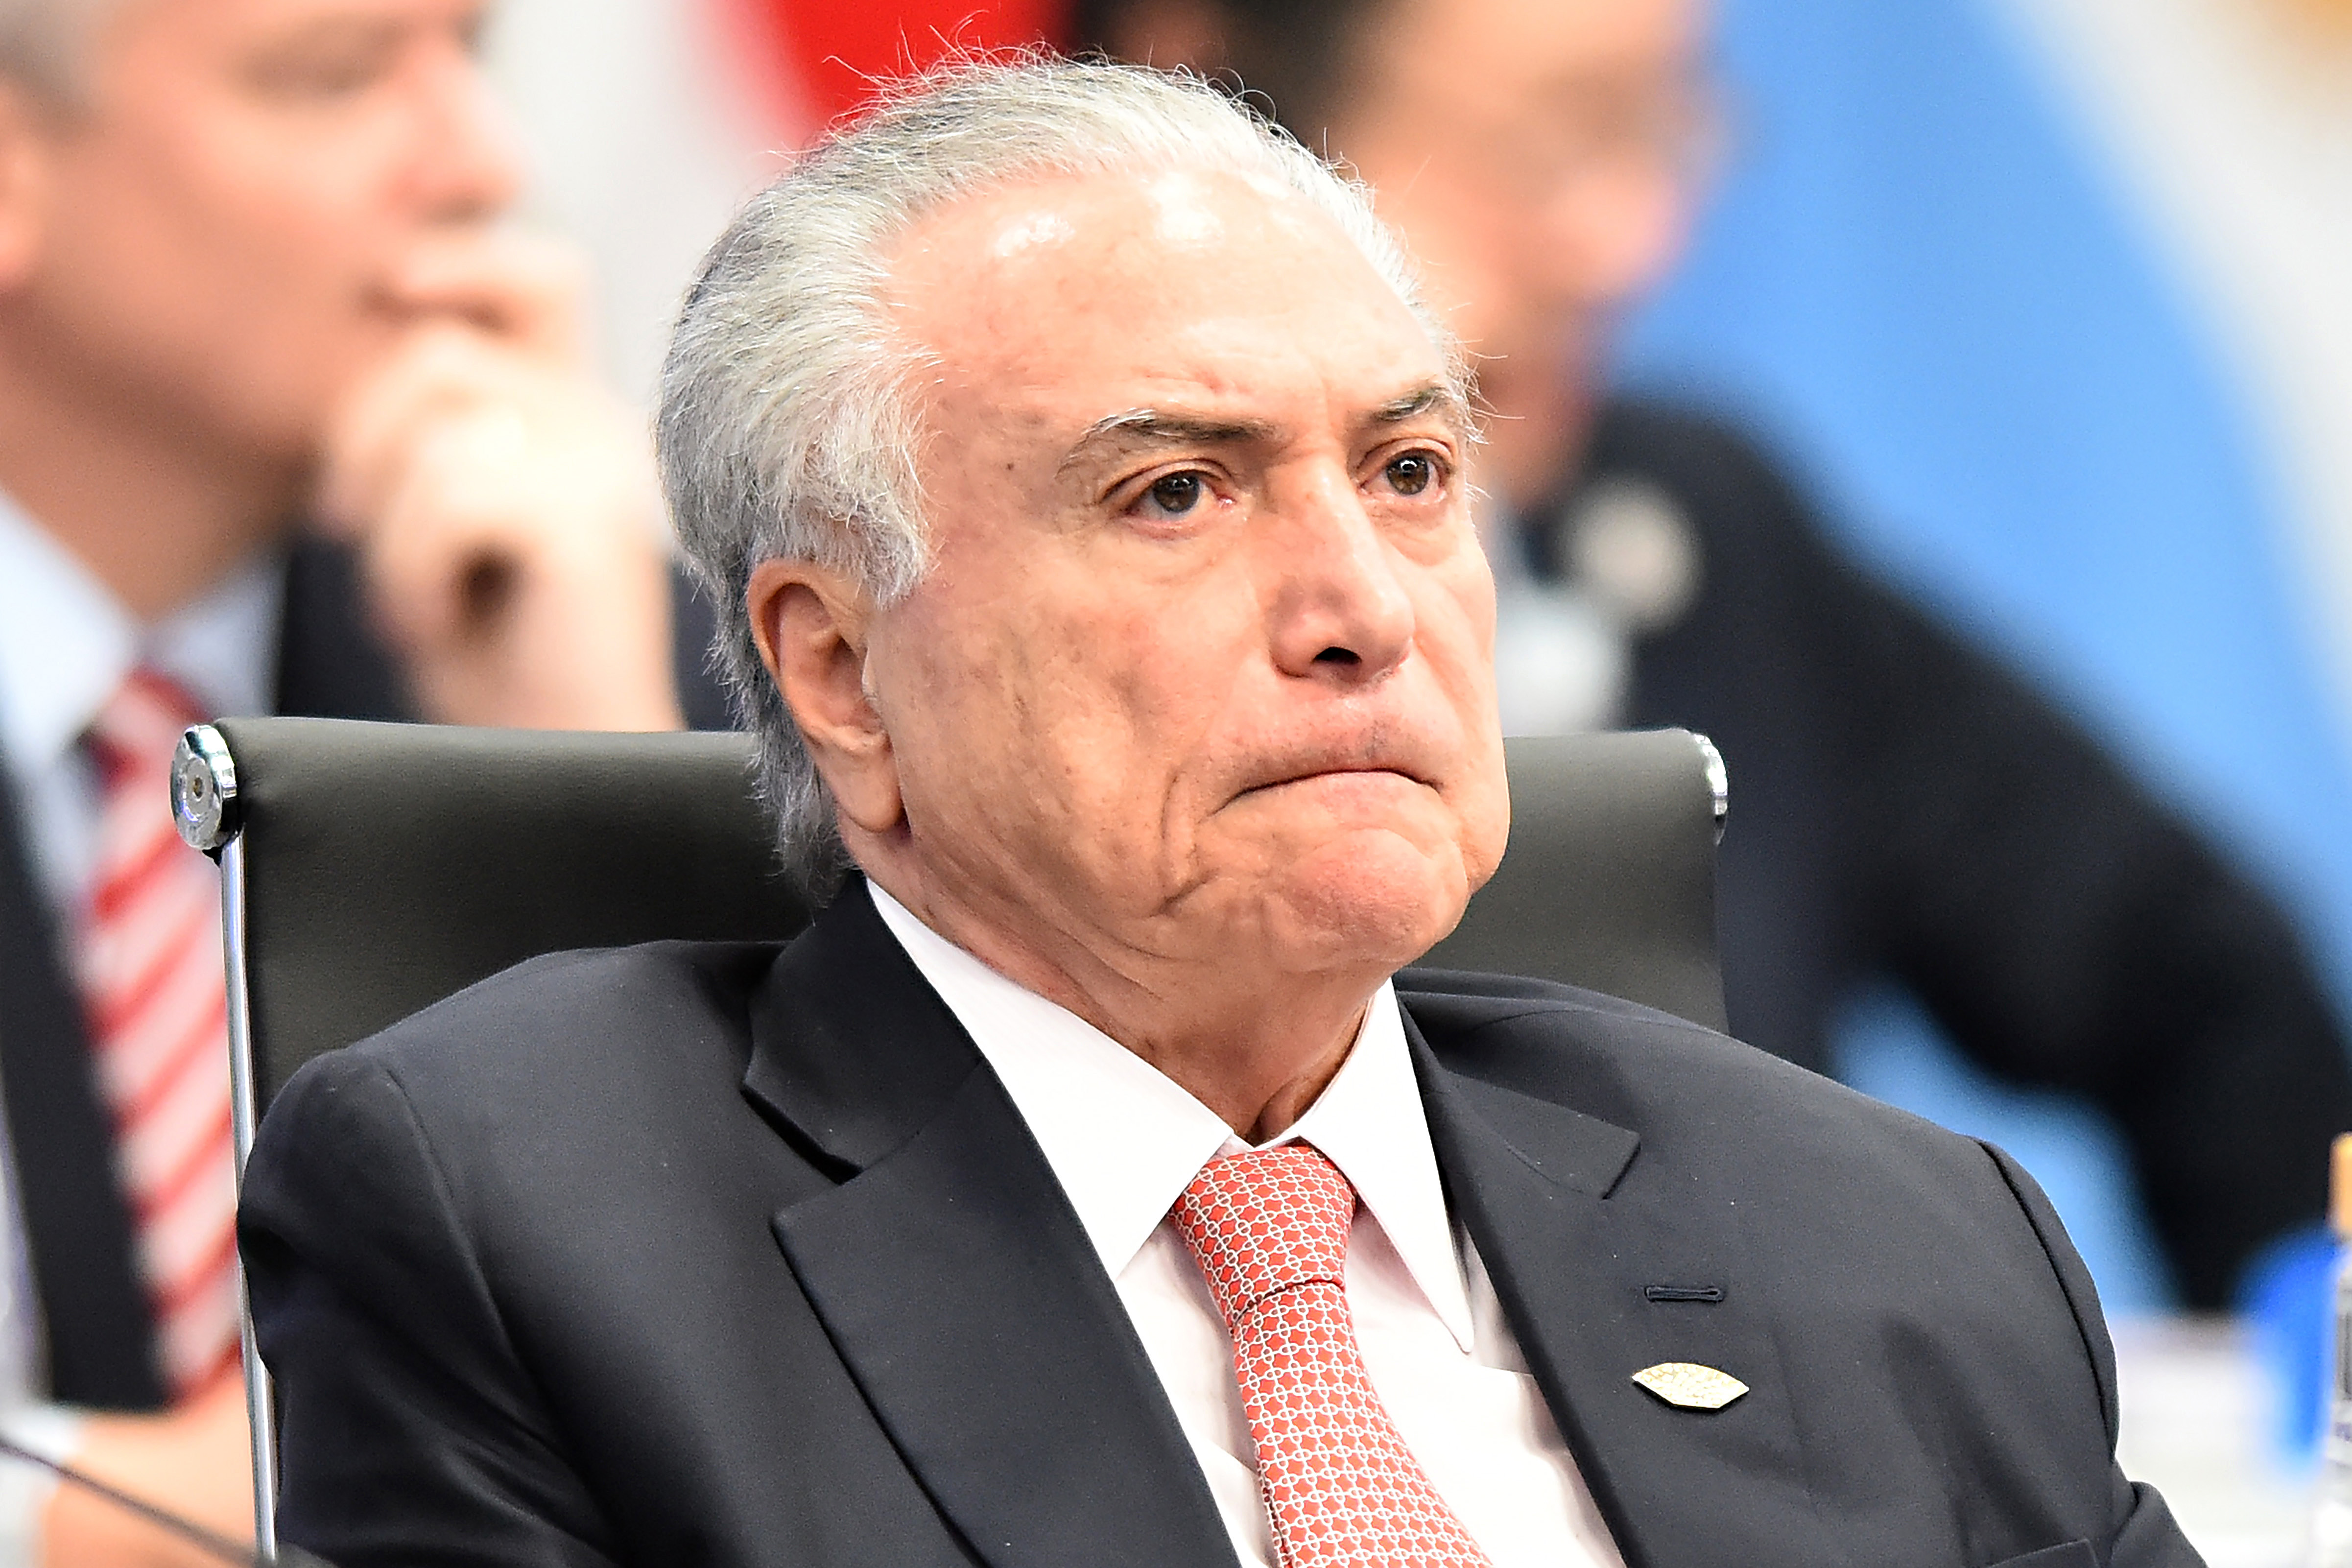 BUENOS AIRES, ARGENTINA - NOVEMBER 30: President of Brazil Michel Temer looks on during the plenary session on the opening day of Argentina G20 Leaders' Summit 2018 at Costa Salguero on November 30, 2018 in Buenos Aires, Argentina. (Photo by Amilcar Orfali/Getty Images)